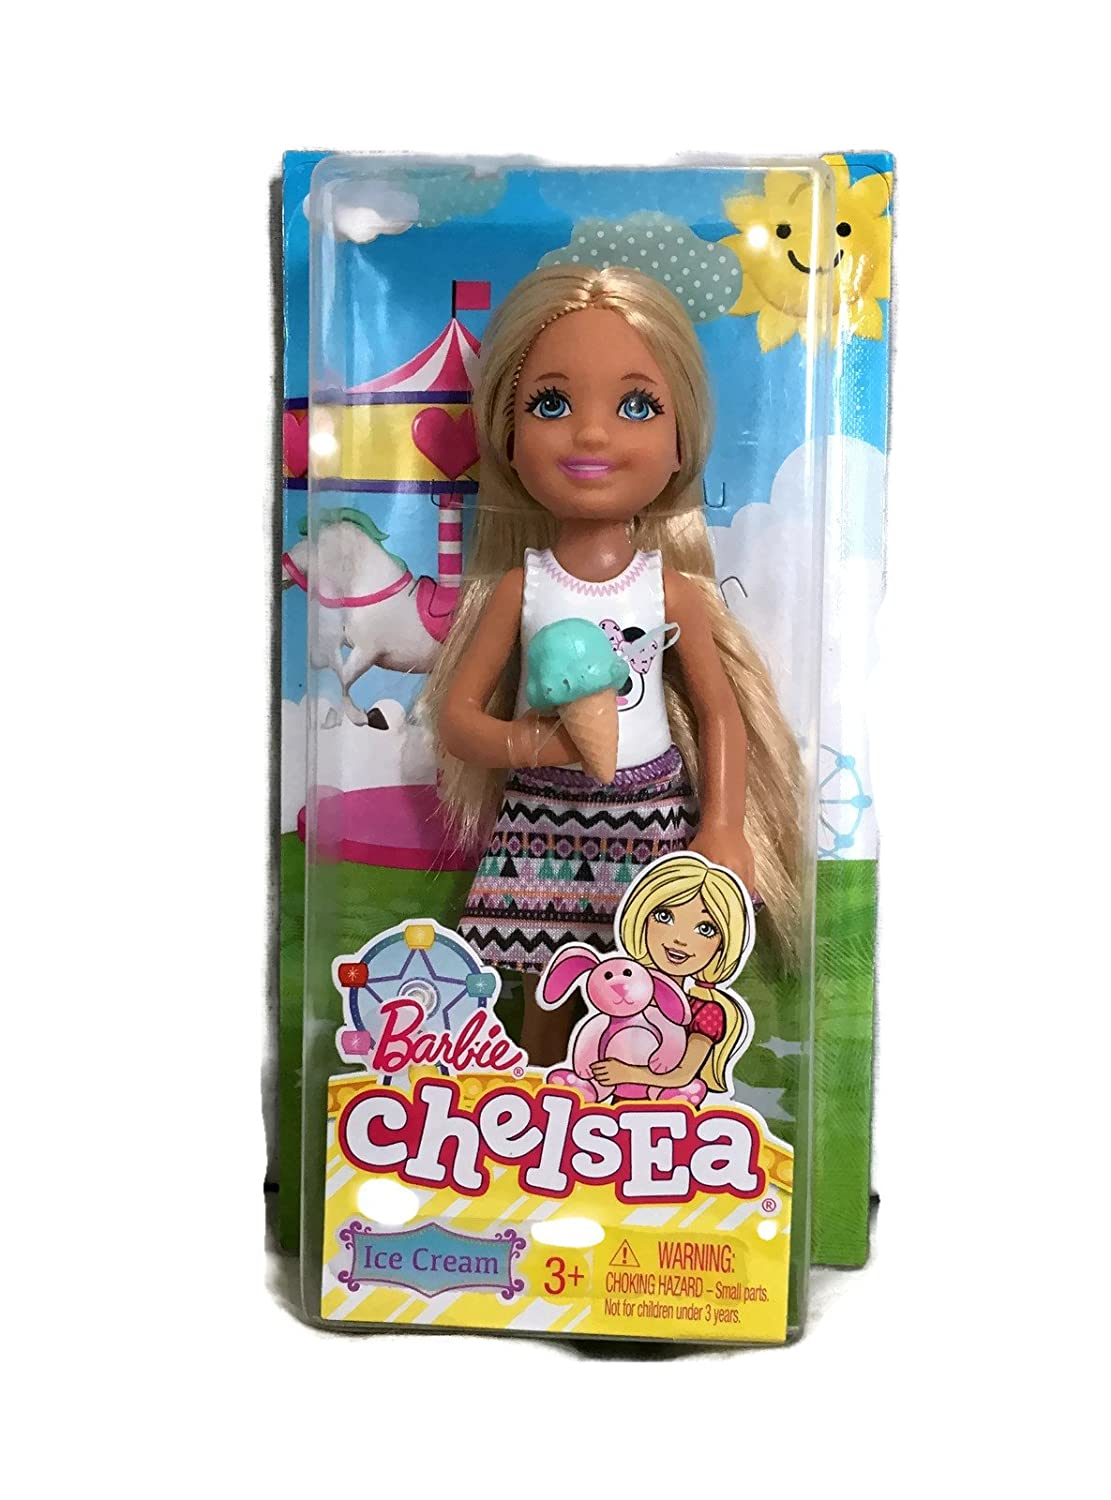 Barbie Chelsea wth Ice Cream